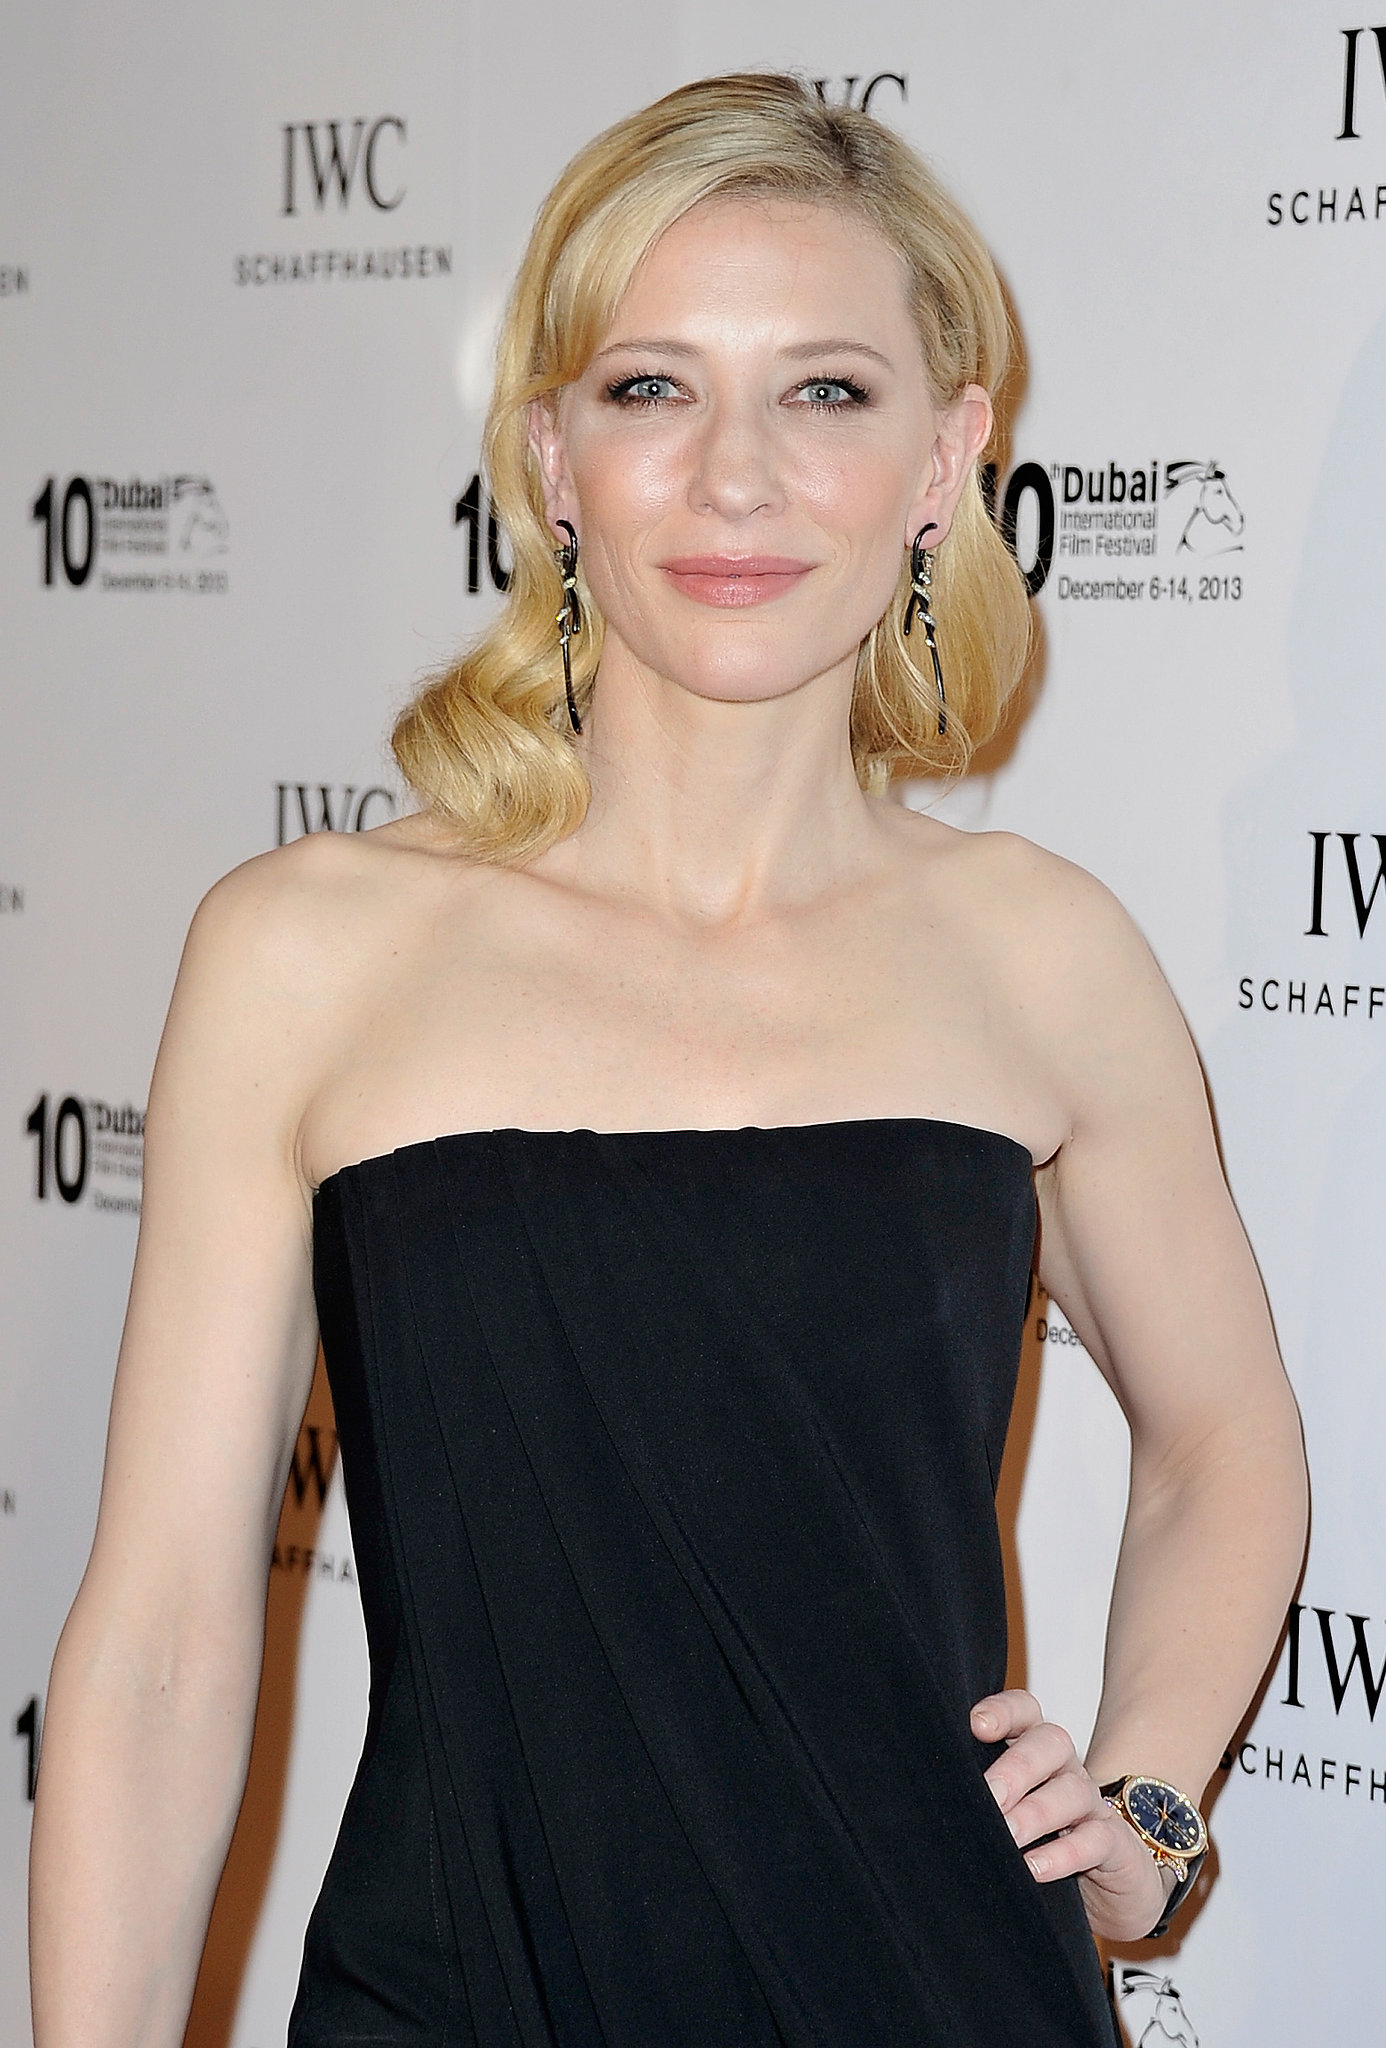 While she'd been the muse of Giorgio Armani for years, it was just this year that Cate Blanchett faced Armani fragrances.